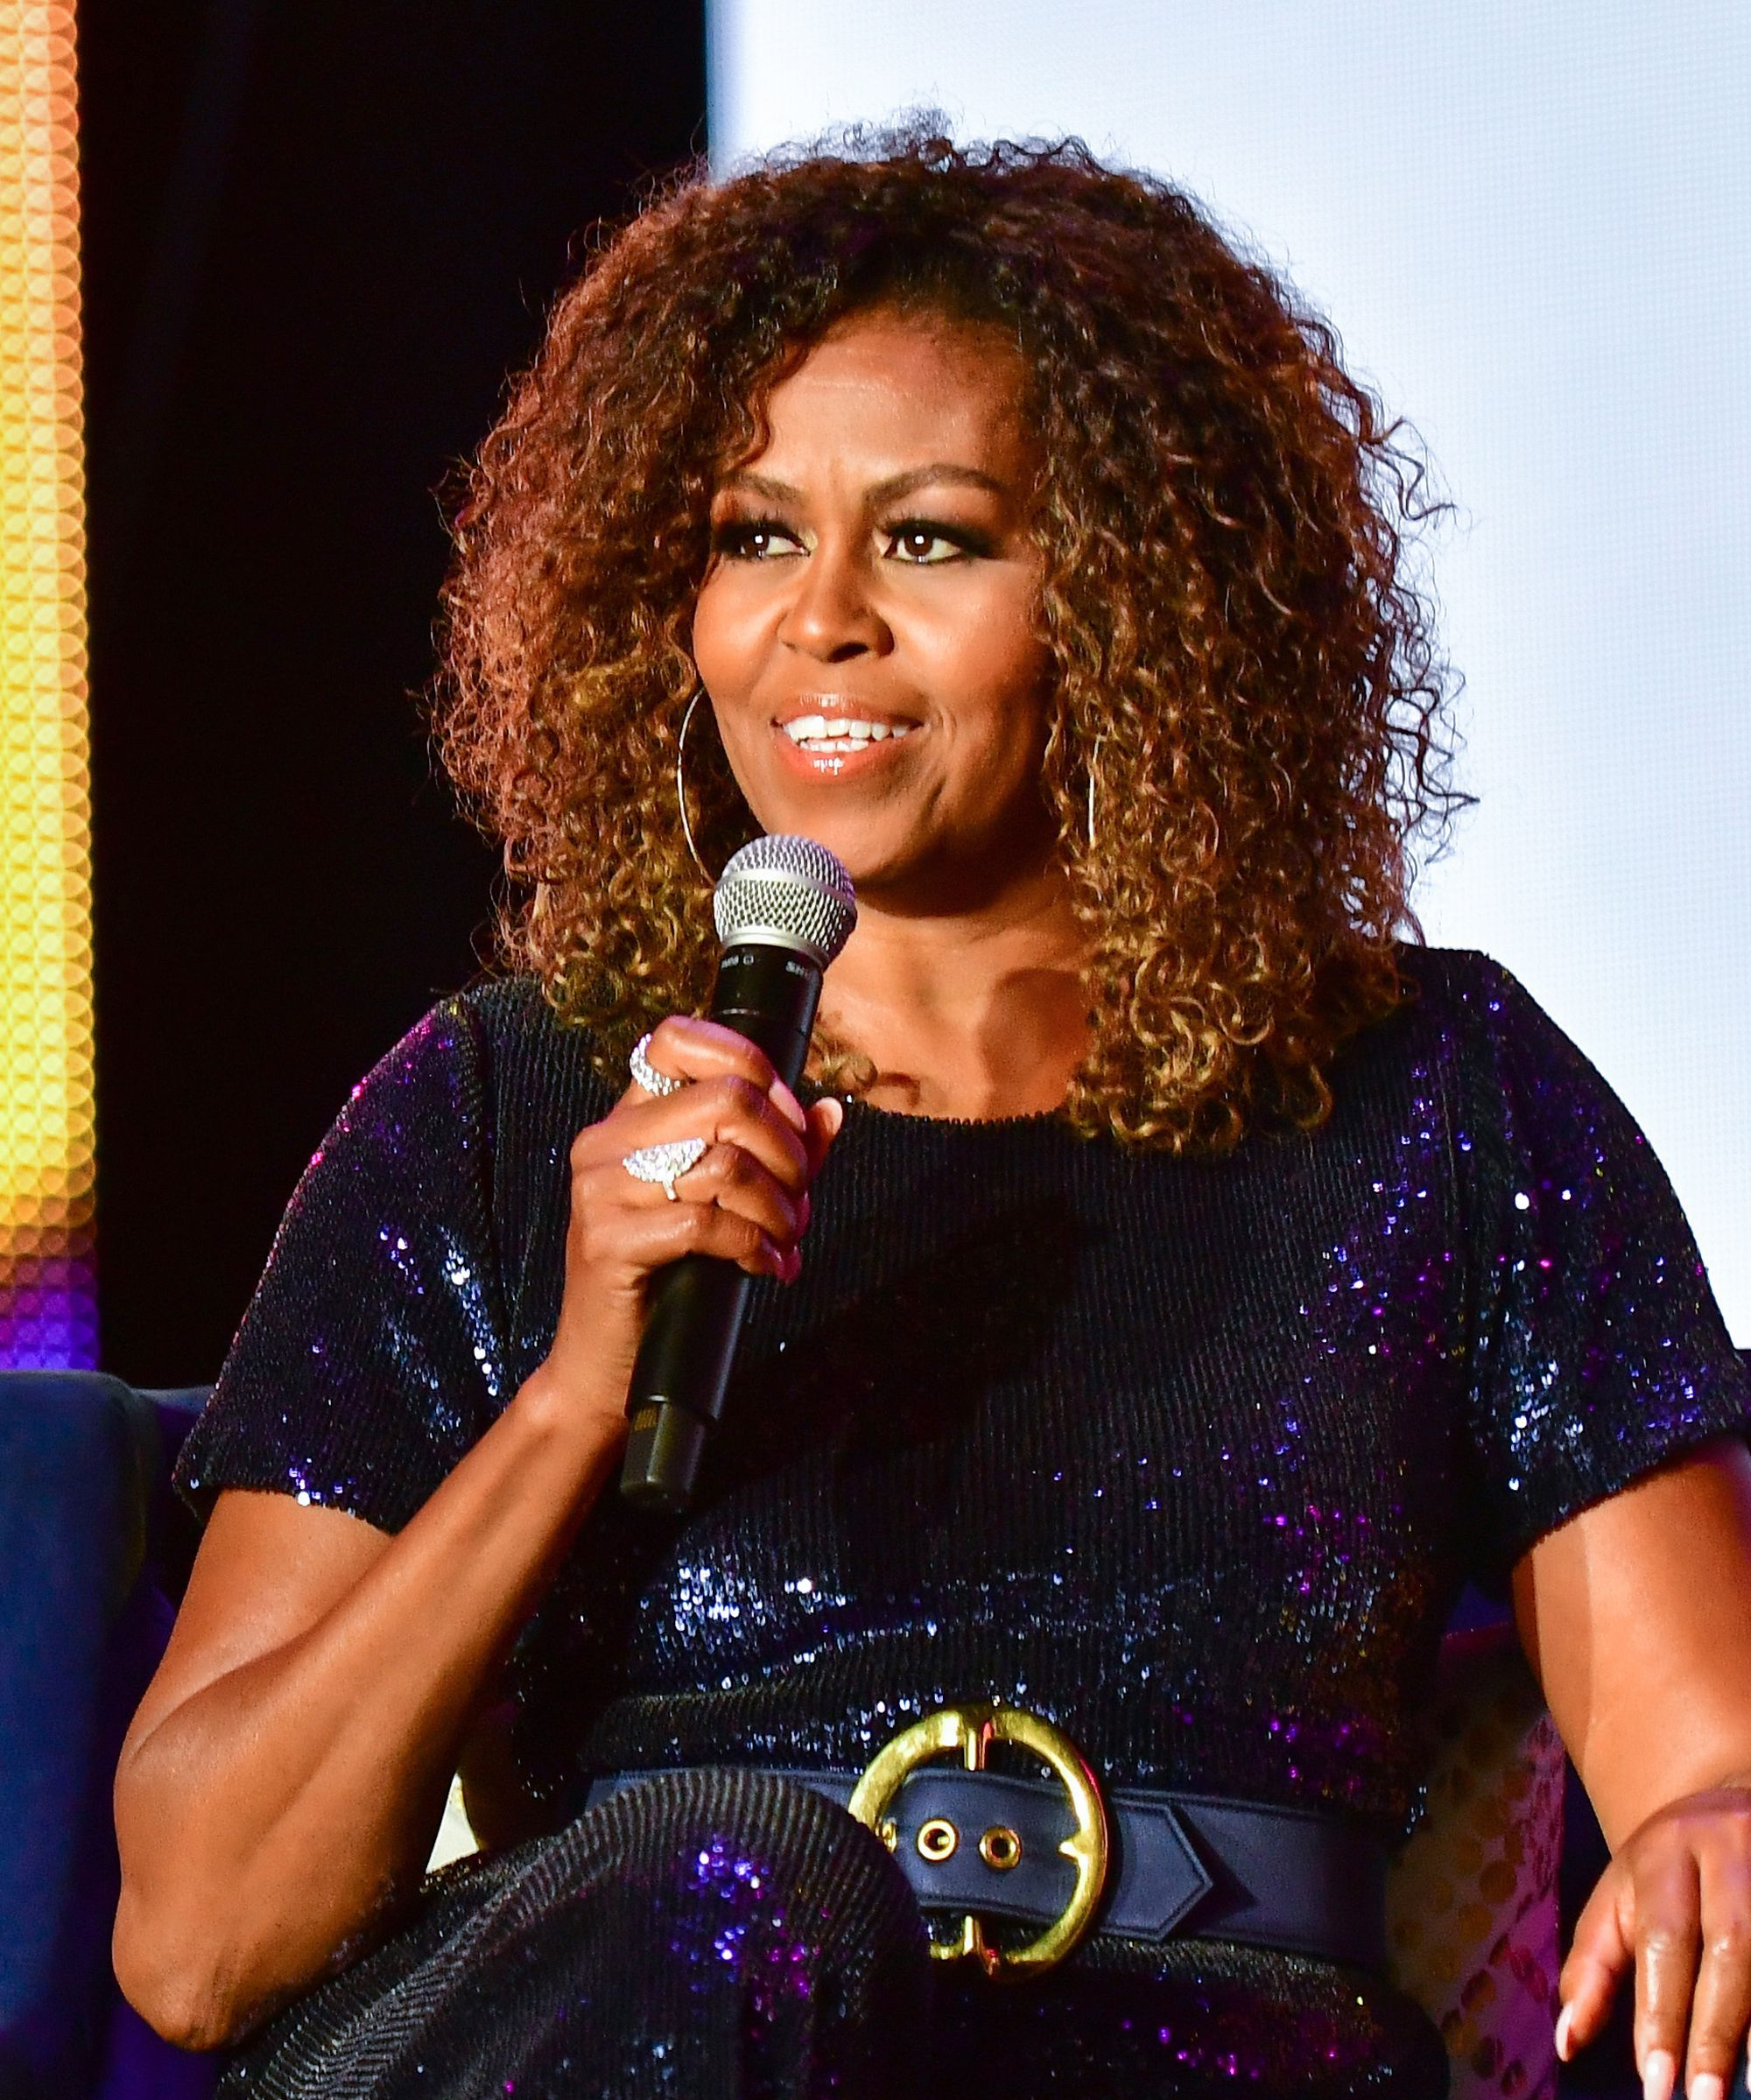 Michelle Obama Is Rocking Ombre Curls Her Fans Are Obsessed Natural Hair Styles Natural Hair Pictures Super Curly Hair